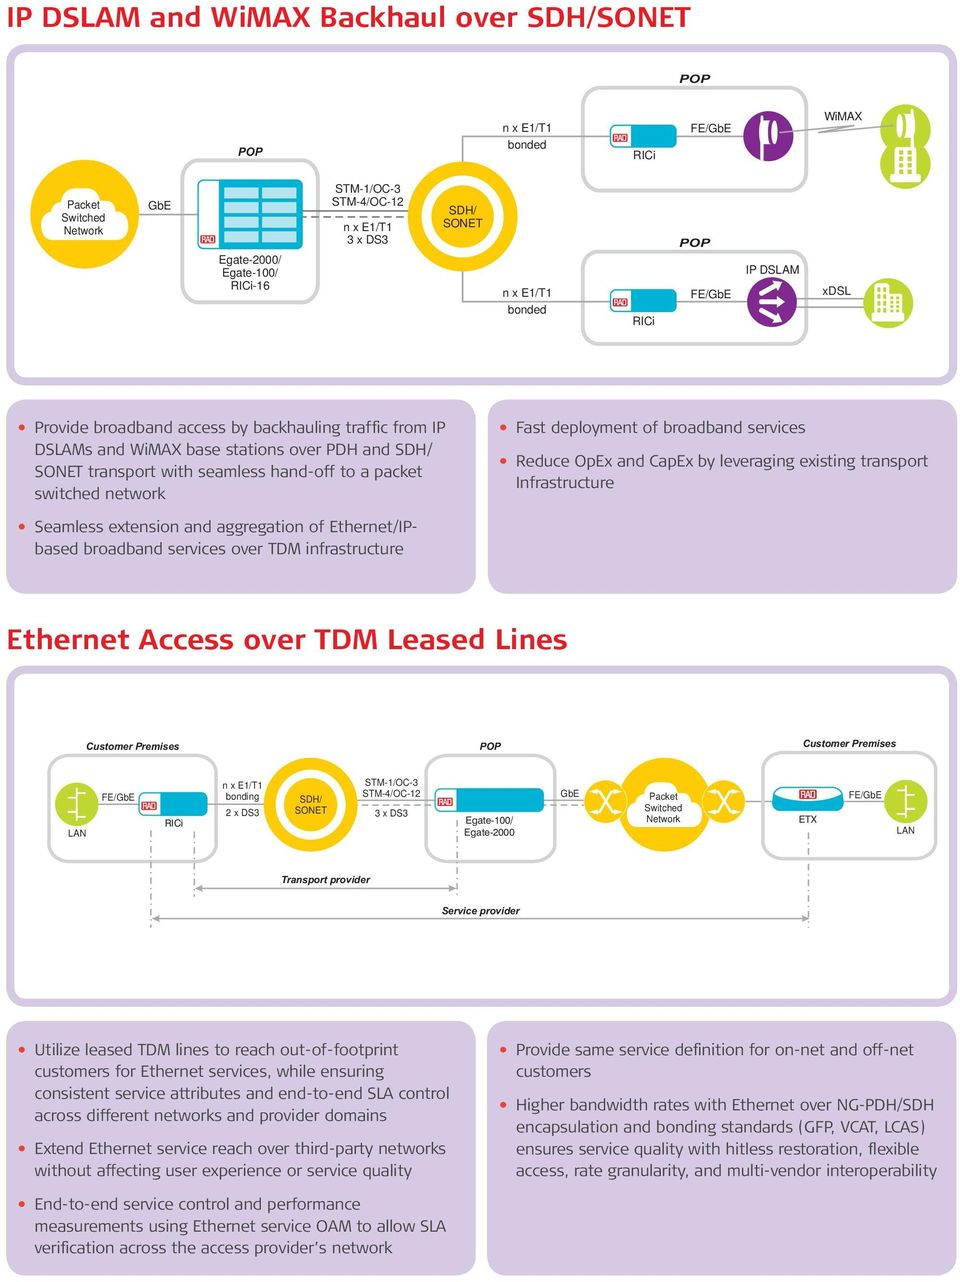 deployment of broadband services Reduce OpEx and CapEx by leveraging existing transport Infrastructure Seamless extension and aggregation of Ethernet/IPbased broadband services over TDM